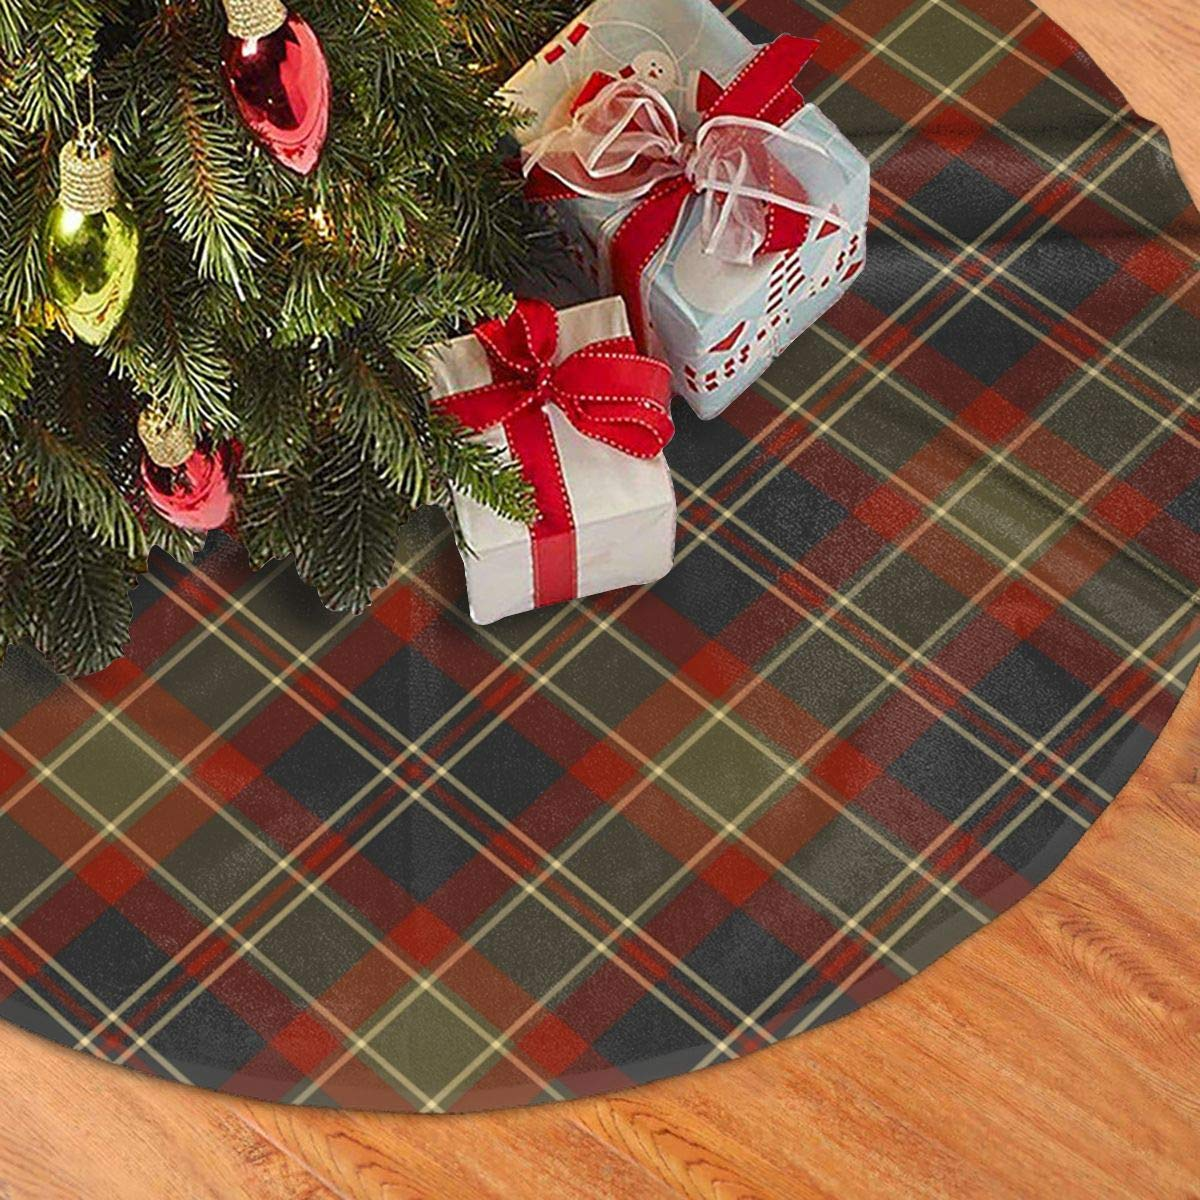 36 48 Inch Moss Green And Cranberry Woodland Christmas Plaid Christmas Tree Skirt Rustic Xmas Tree Holiday Decorations